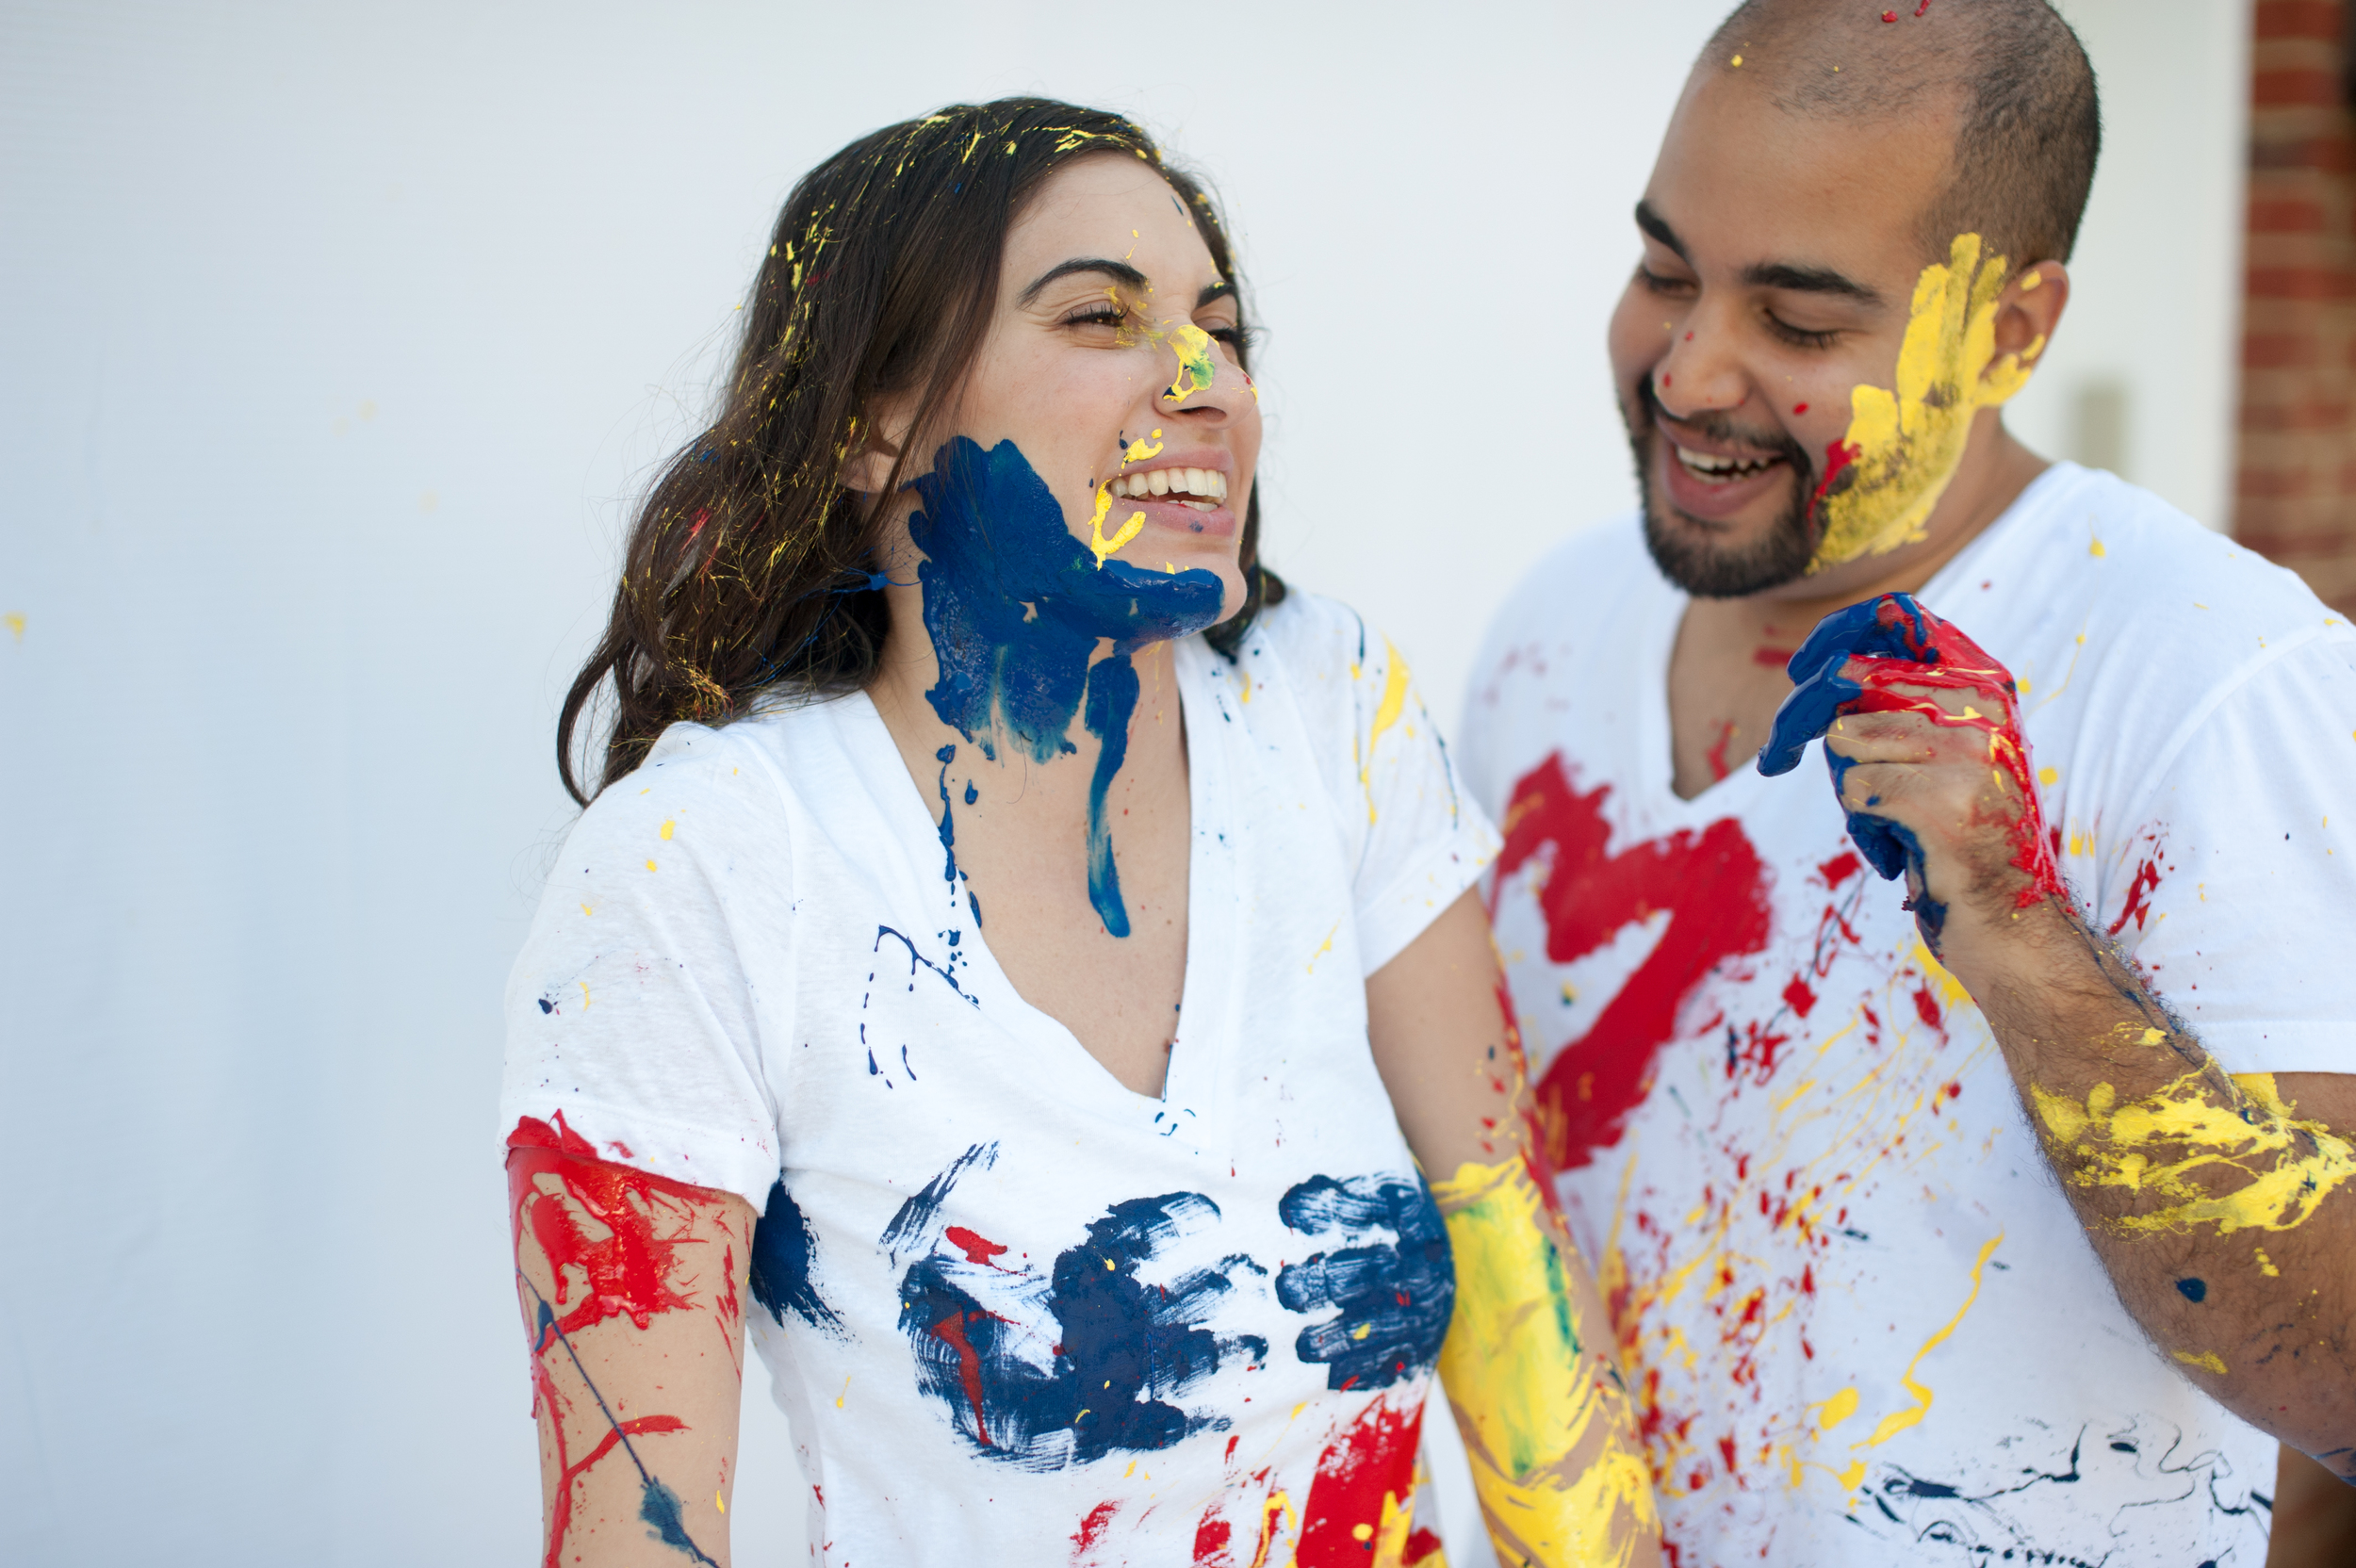 Paint War Engagement Session by Mantas Kubilinskas-7.jpg